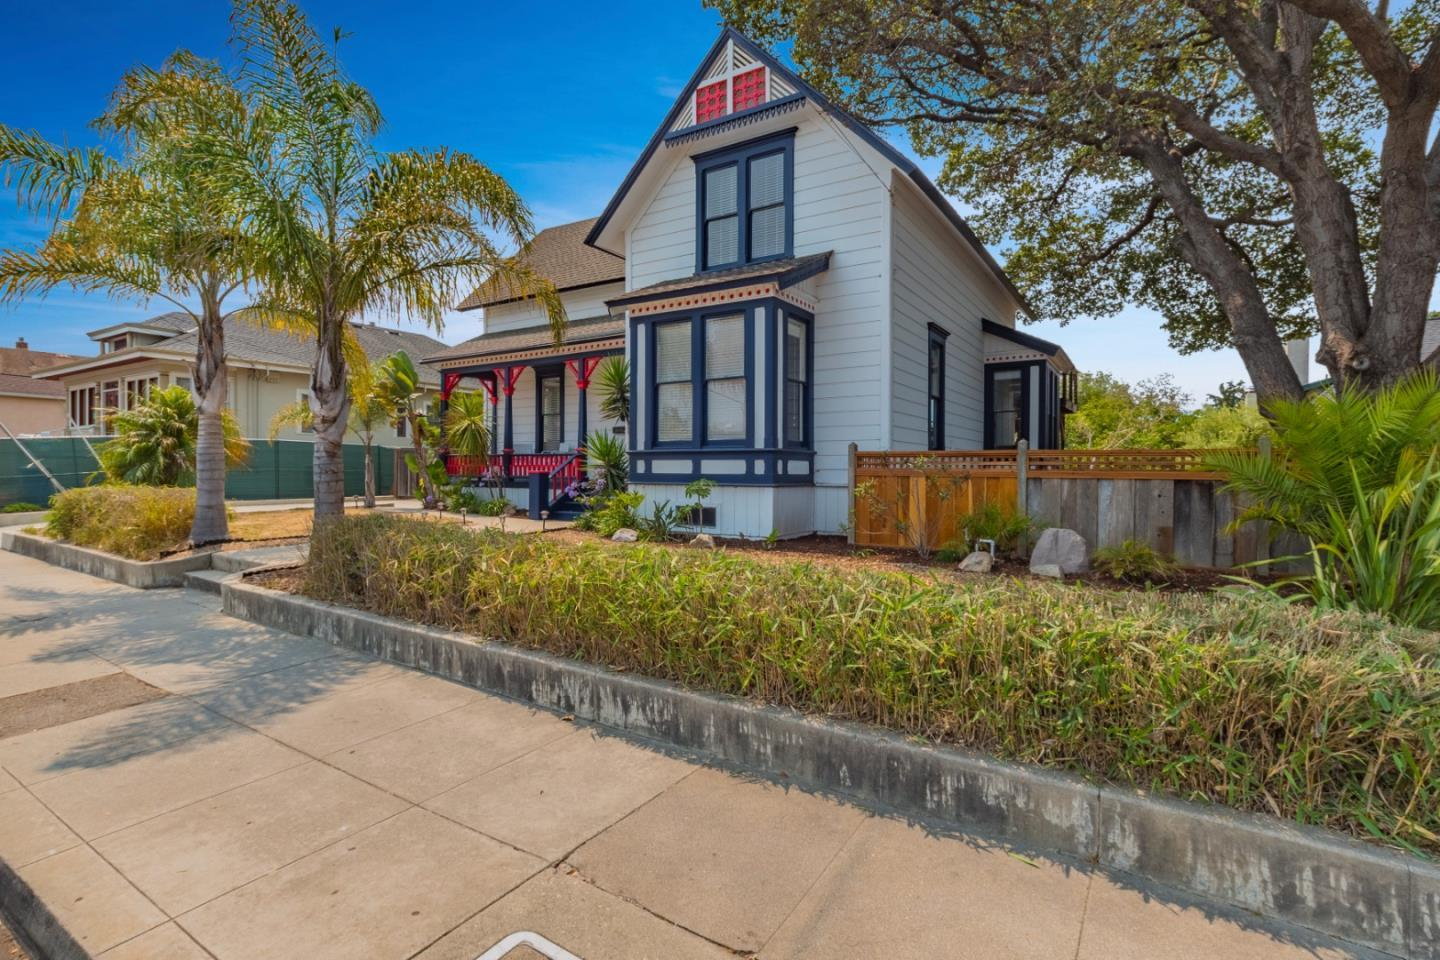 This beautiful Victorian is a legal triplex zoned low-density multi-family centered in the highly desirable Seabright Beach neighborhood & recently designated Opportunity Zone! Spectacular development opportunity! With 3 kitchens, 3 bathrooms, 4 bedrooms, 3 living spaces and a very large lot, you have endless options for making the most of this amazing property. Bring your entire family together for a barbecue on the huge deck, then retreat to a private unit to enjoy a book after a long day at the beach. Or rent out a unit or two and keep one available for your family to use whenever you want! Now that's a savvy way to vacay! Develop the expansive lot into additional units to accommodate a larger family or gain more rental income. Walk or bike to local favorite hotspots such as Verve Coffee, Java Junction, La Posta, Tramonti, Linda's Seabreeze Cafe, and the Arana Gulch trail, which provides lovely views and easy access to the Santa Cruz Harbor and, of course, Seabright Beach!